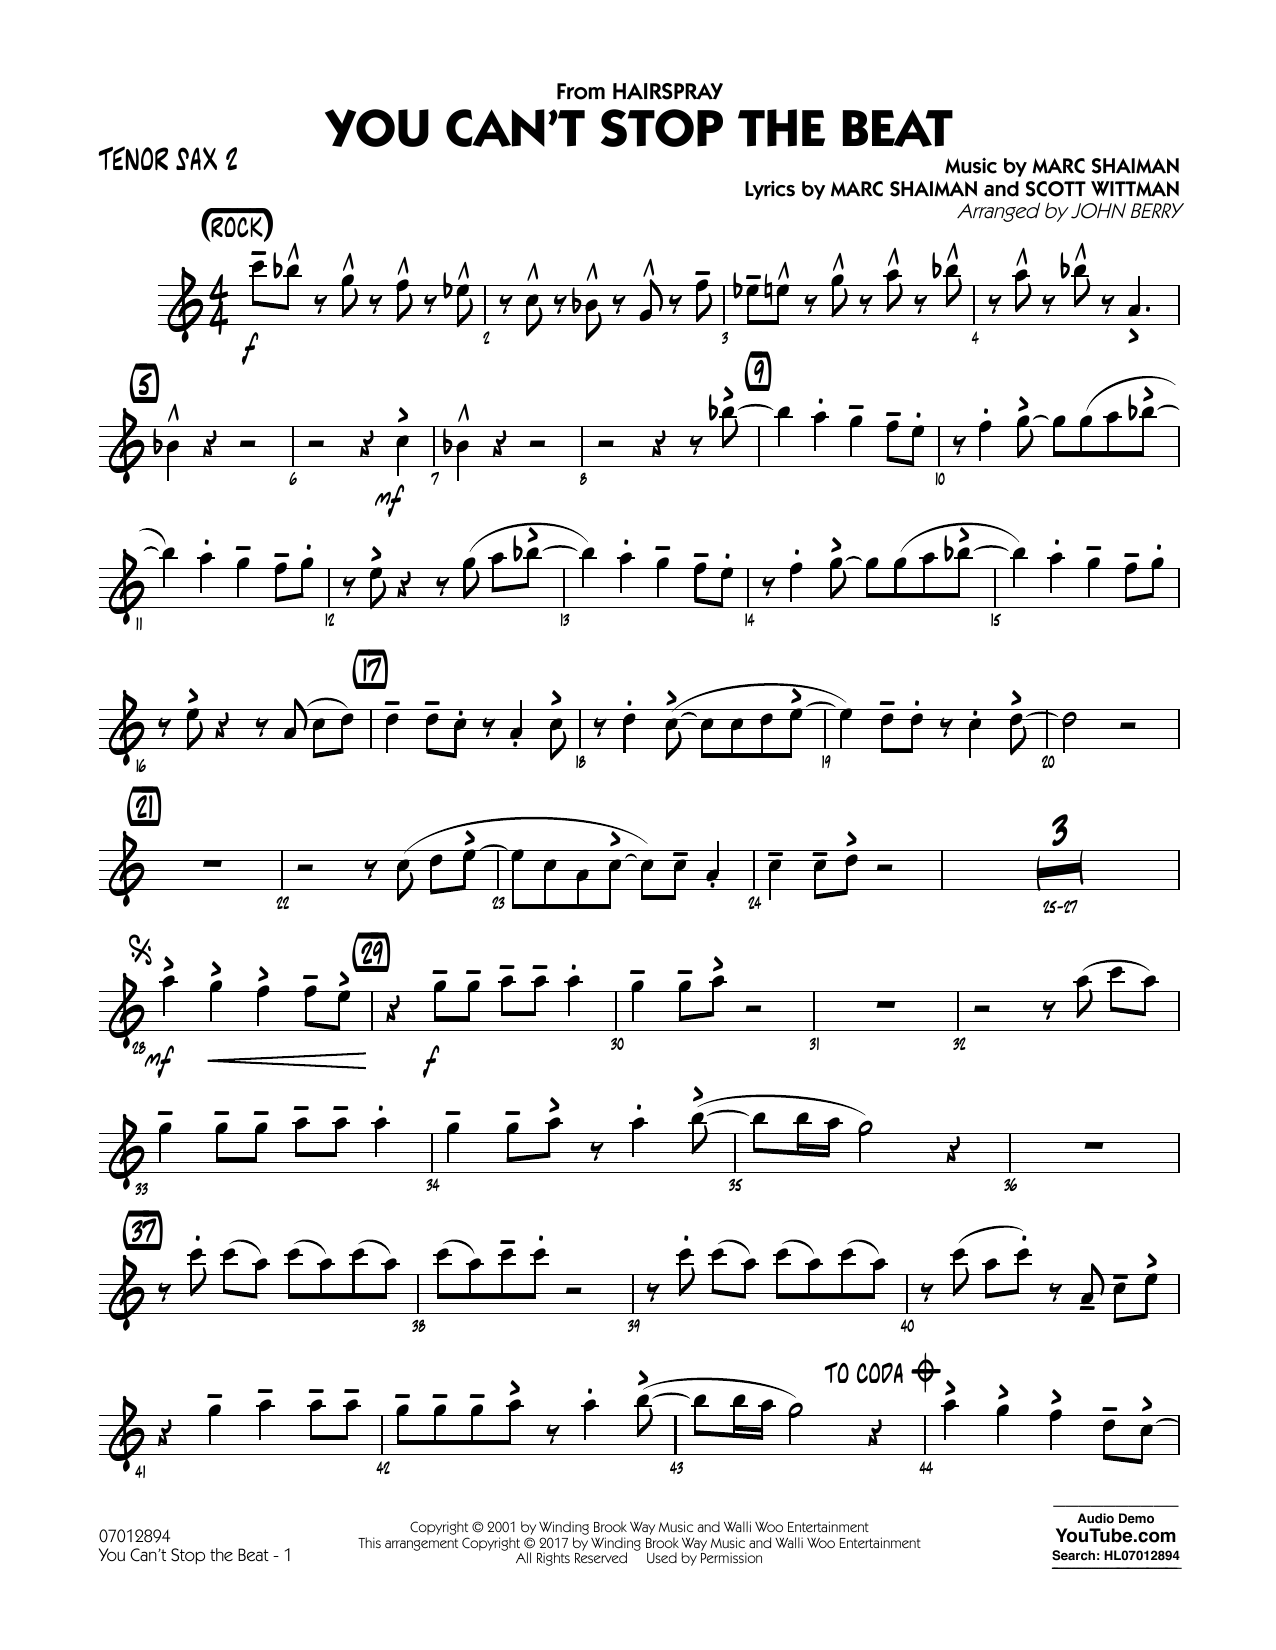 You Can't Stop the Beat (from Hairspray) - Tenor Sax 2 Sheet Music